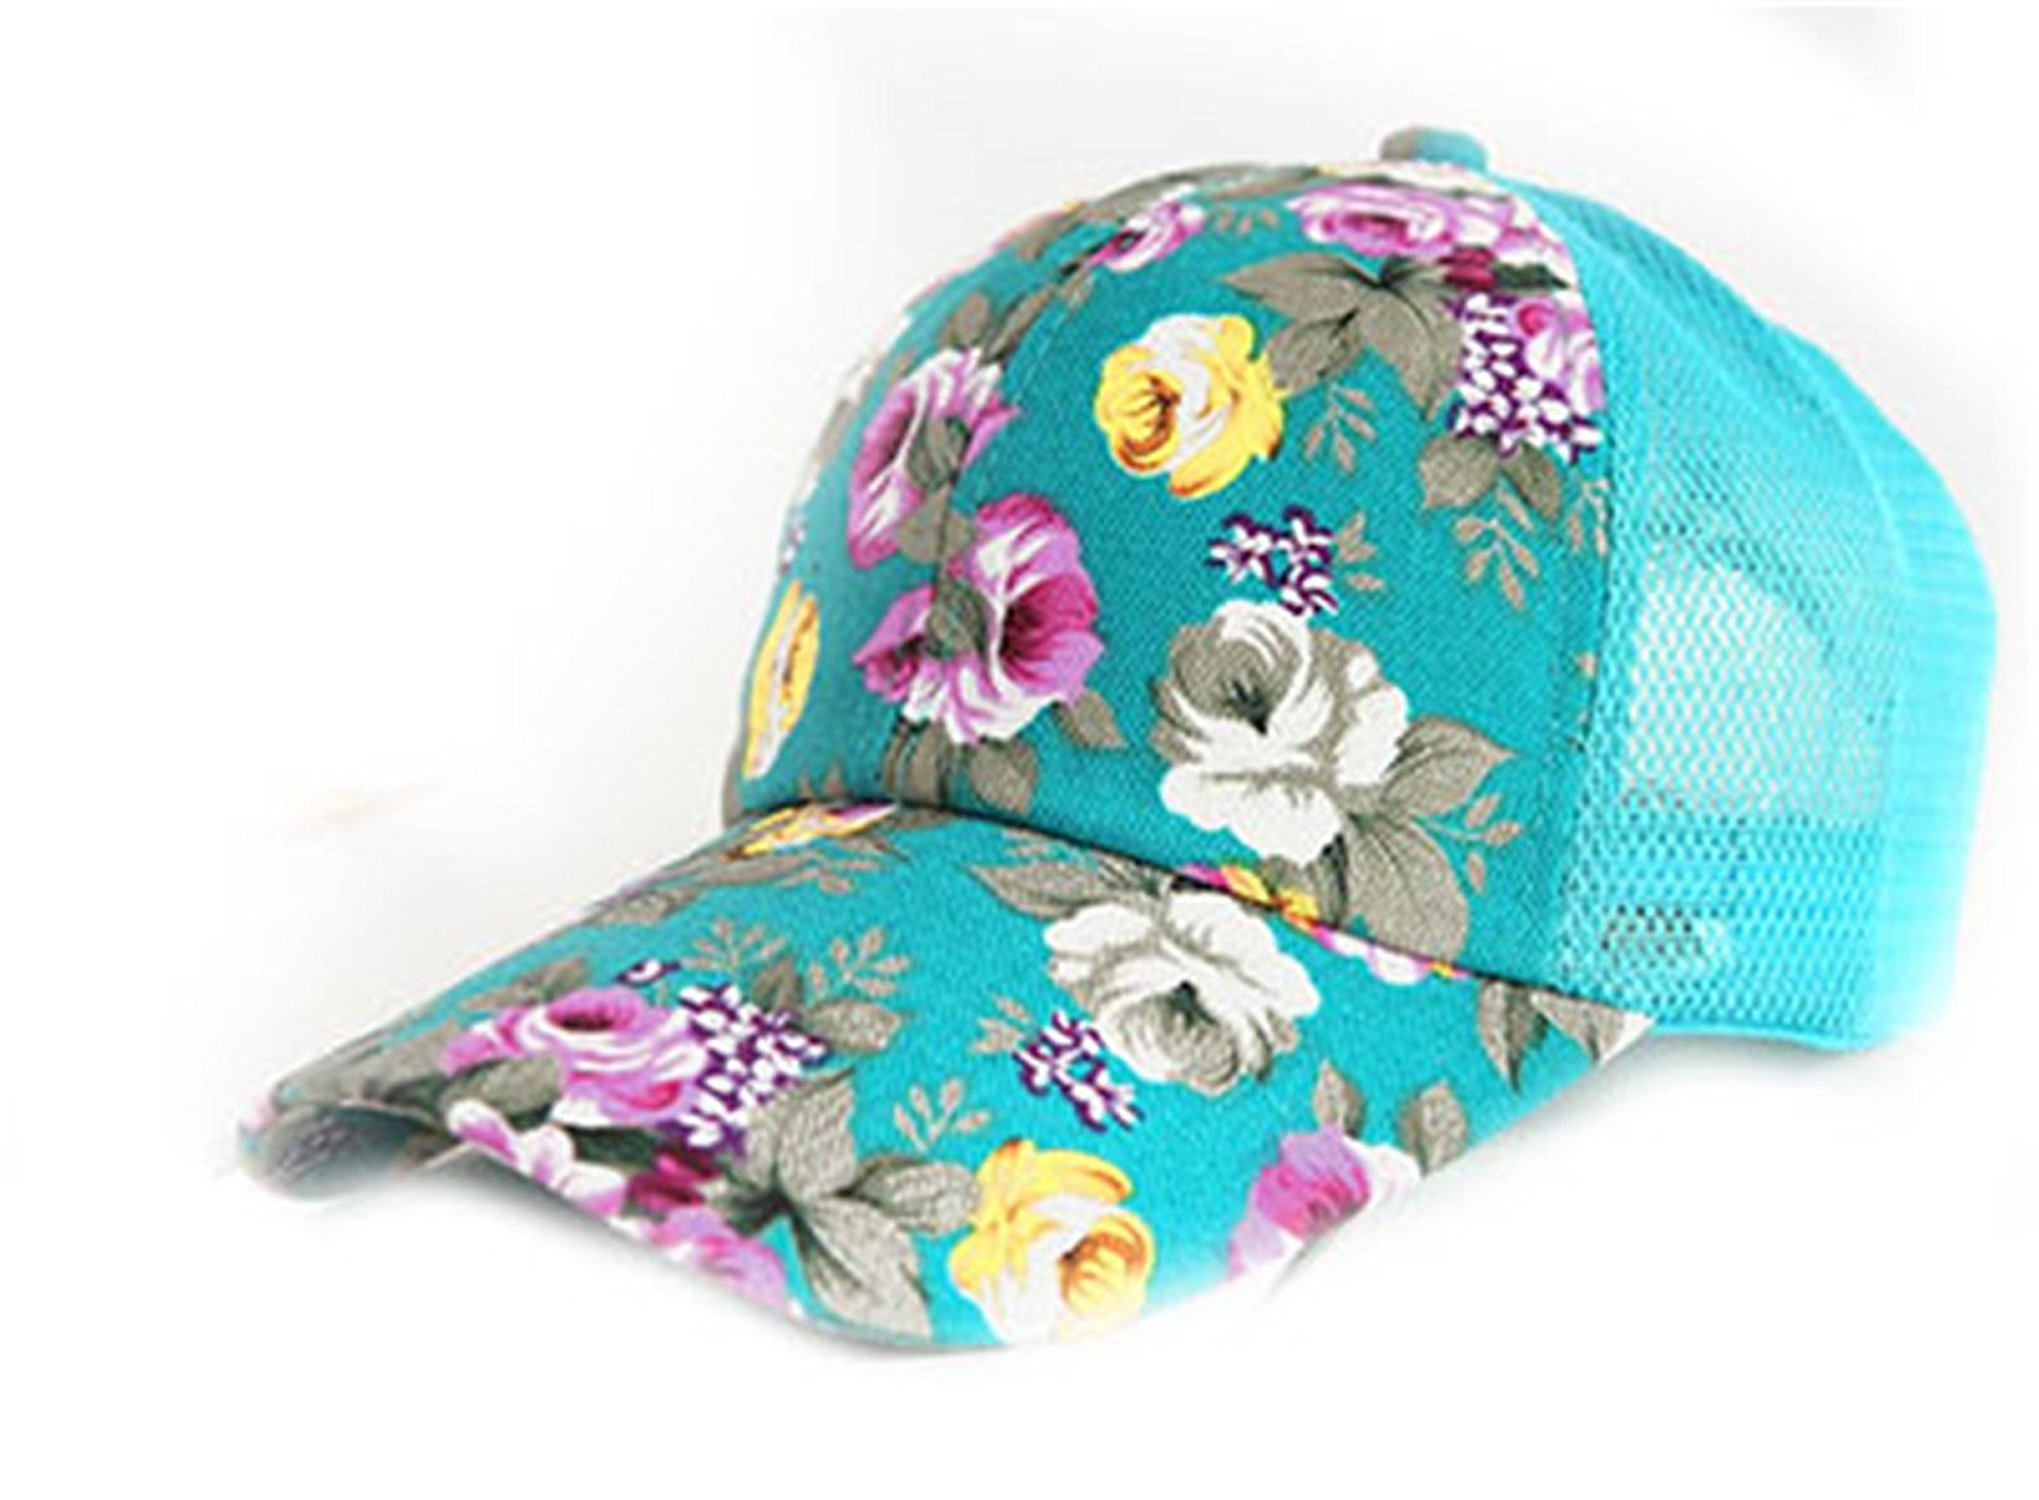 Barry picks Female Floral Baseball Hat for Women Spring and Summer Casual Cap Girls Sun Snapback Hats for Sport l Leisure,Adjustablefreesize,SkyBlue